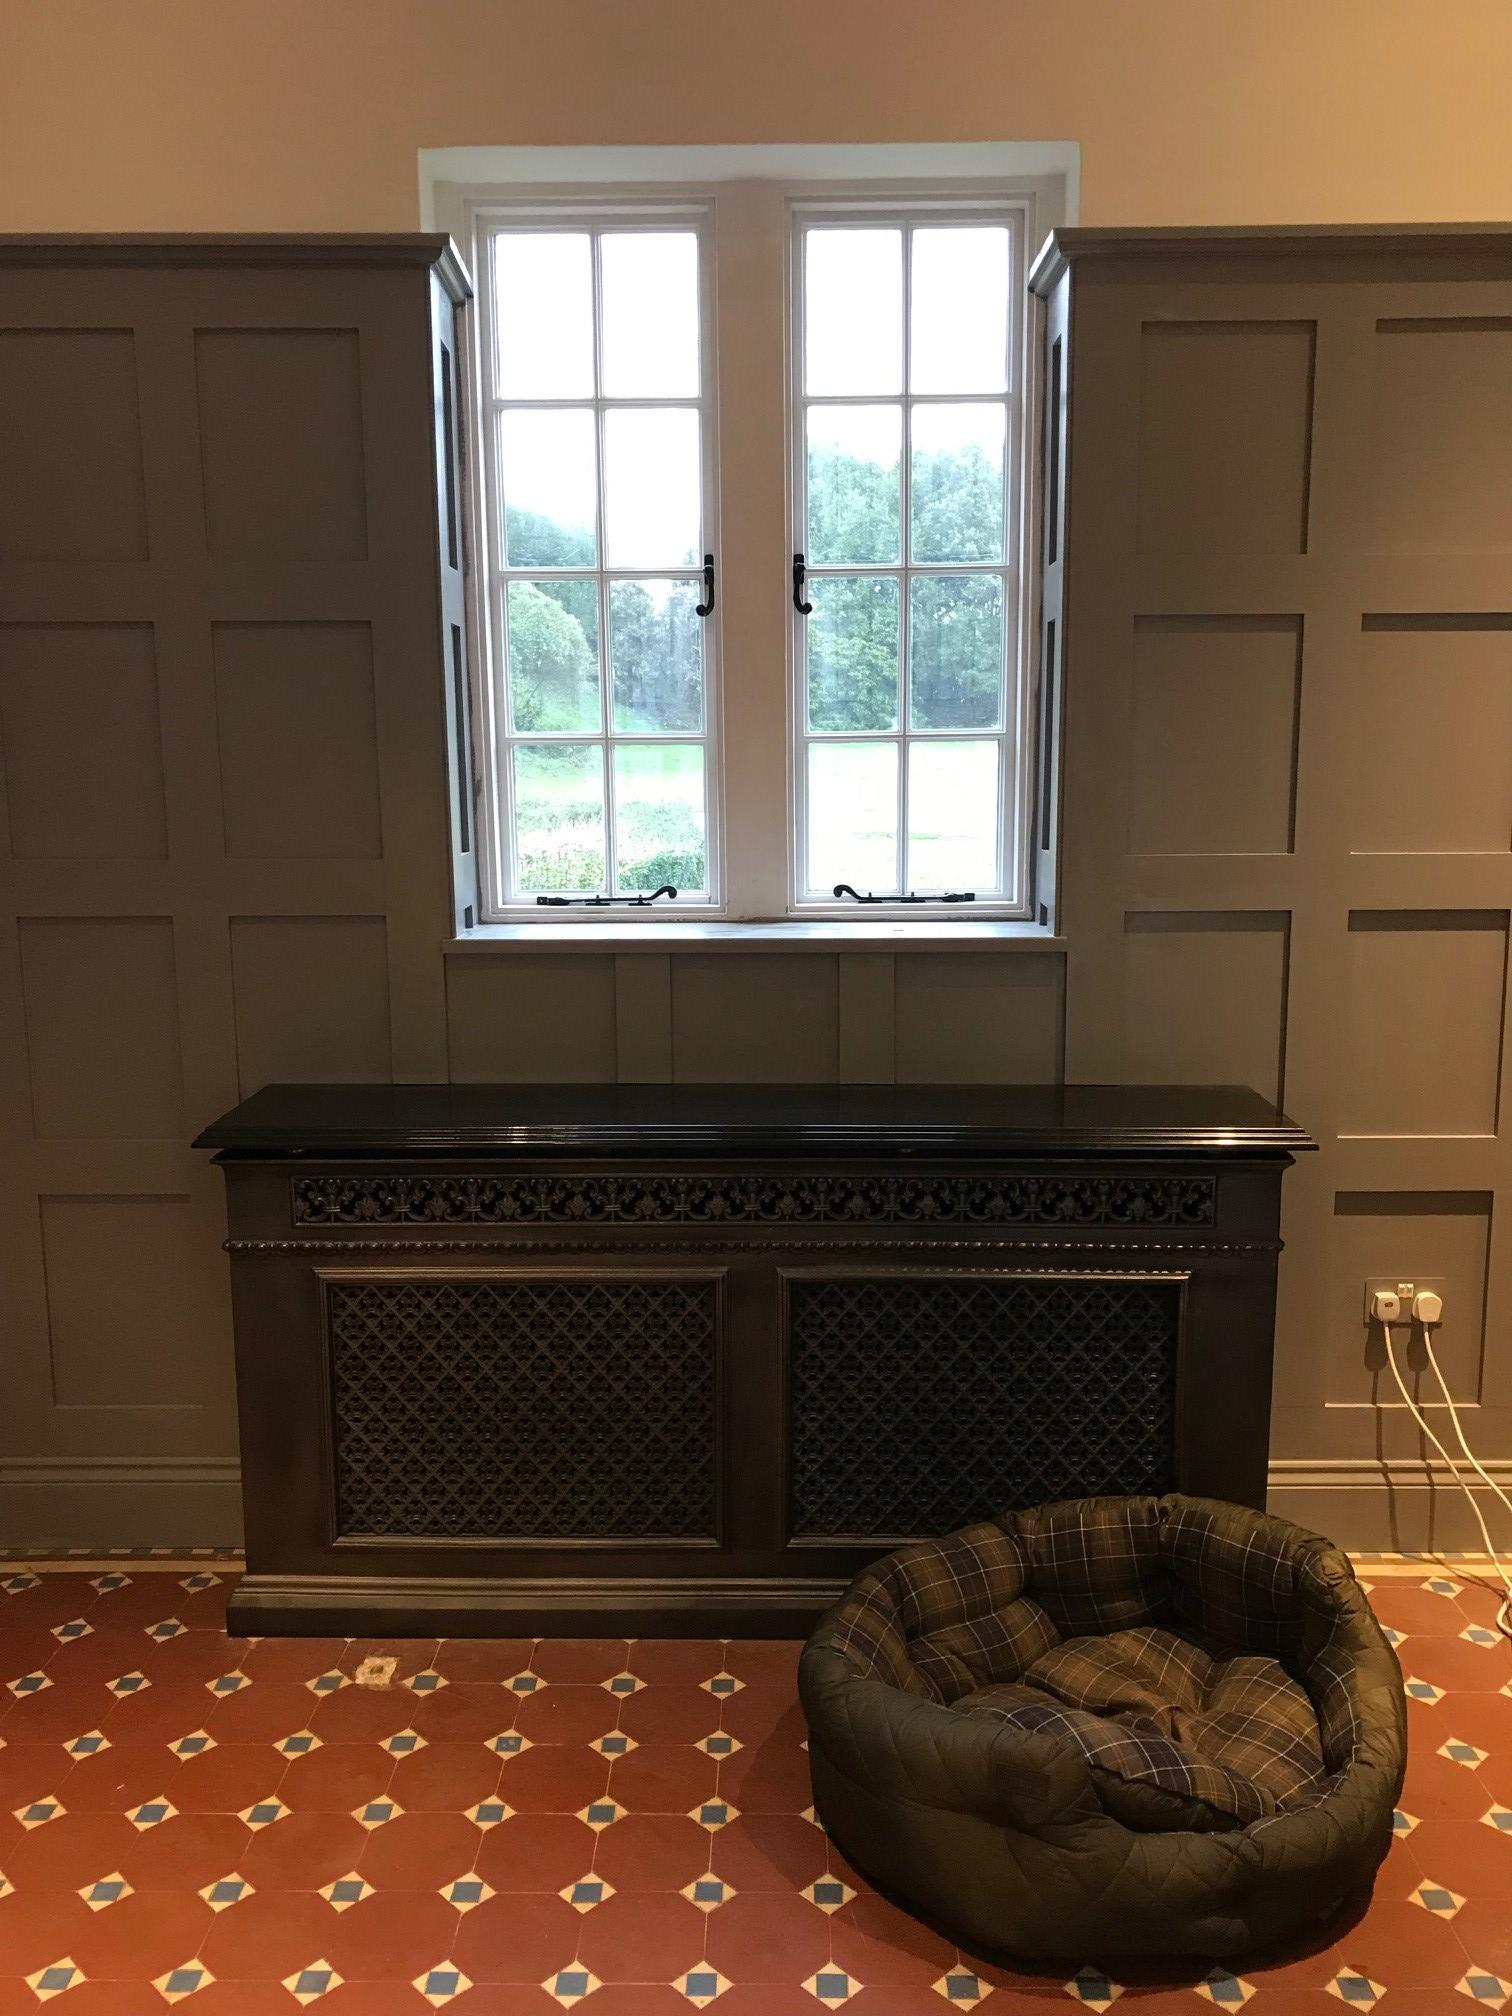 Carron cast iron radiator covers available at UKAA. Traditional cast iron radiator covers fitted in a Victorian property. Victorian style radiator covers. Buy online